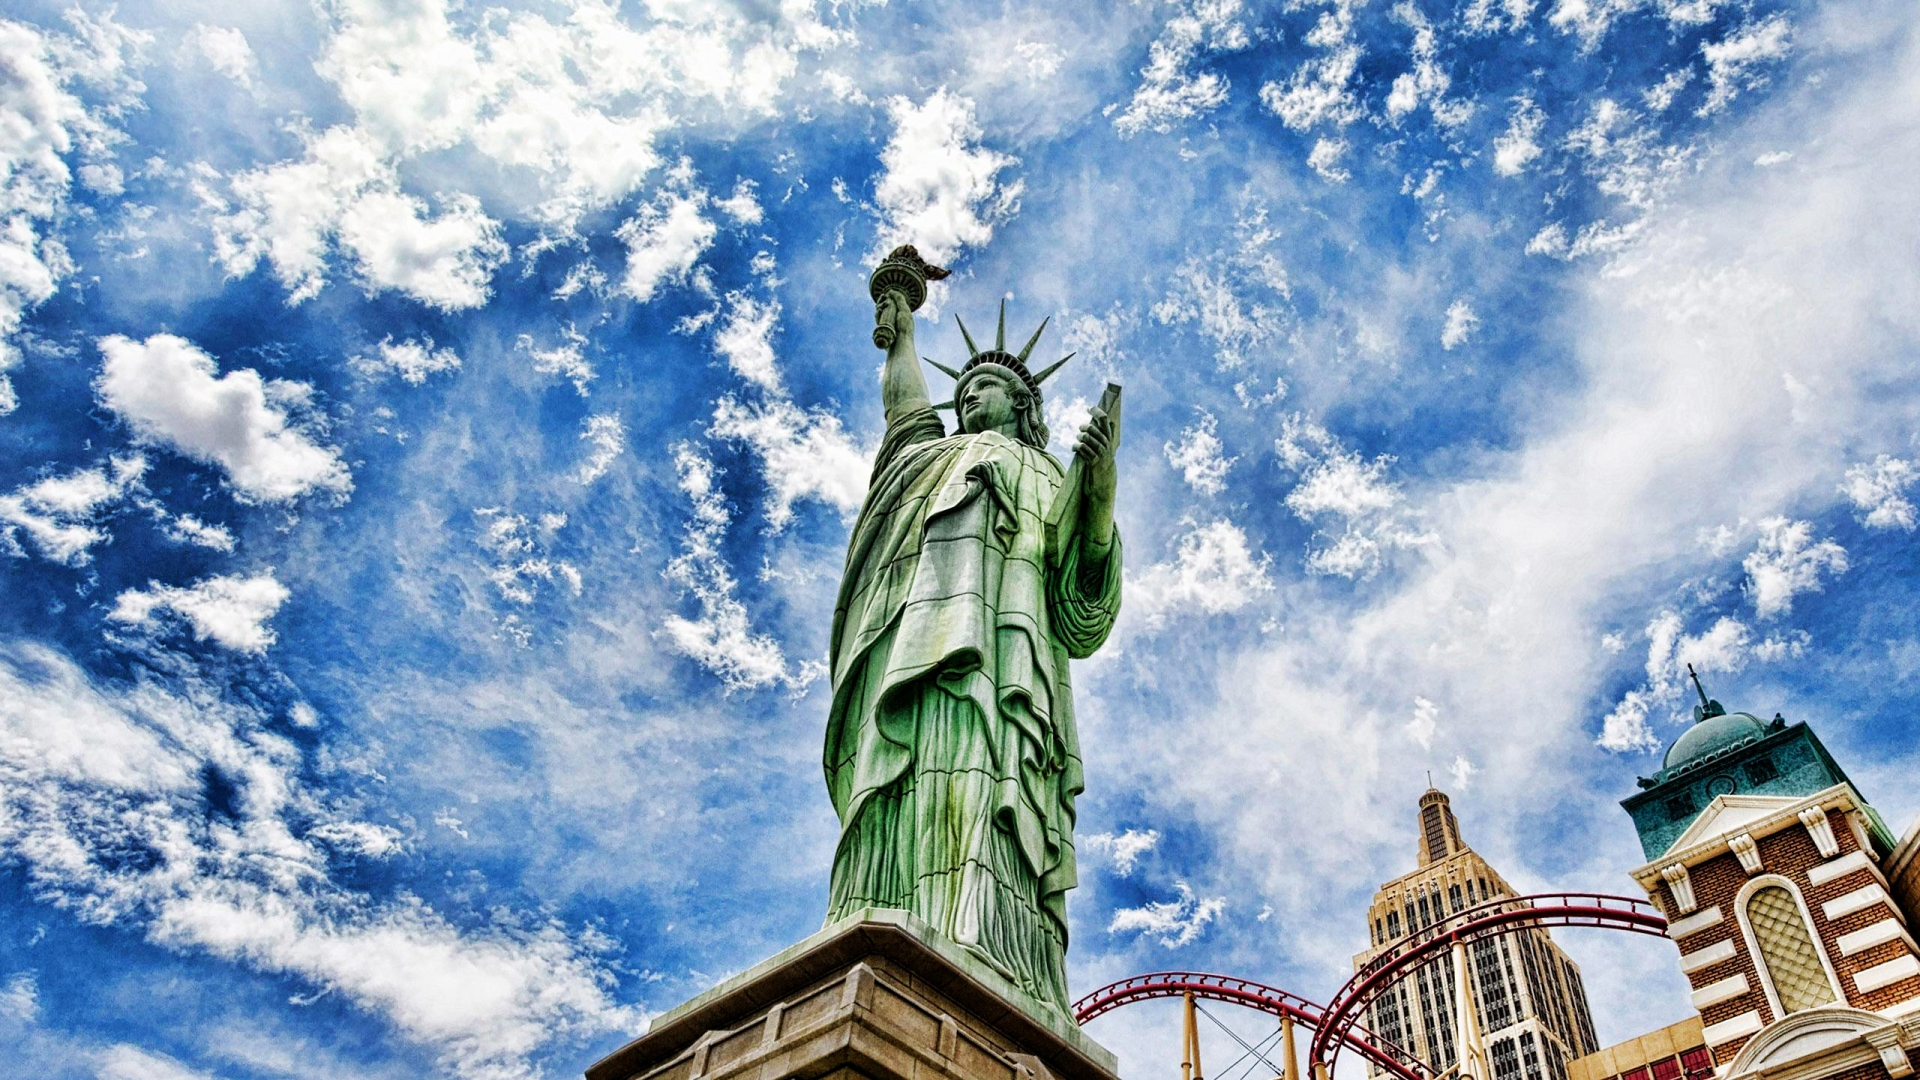 Hd wallpaper travel - Statue Of Liberty Wallpapers Travel Hd Wallpapers